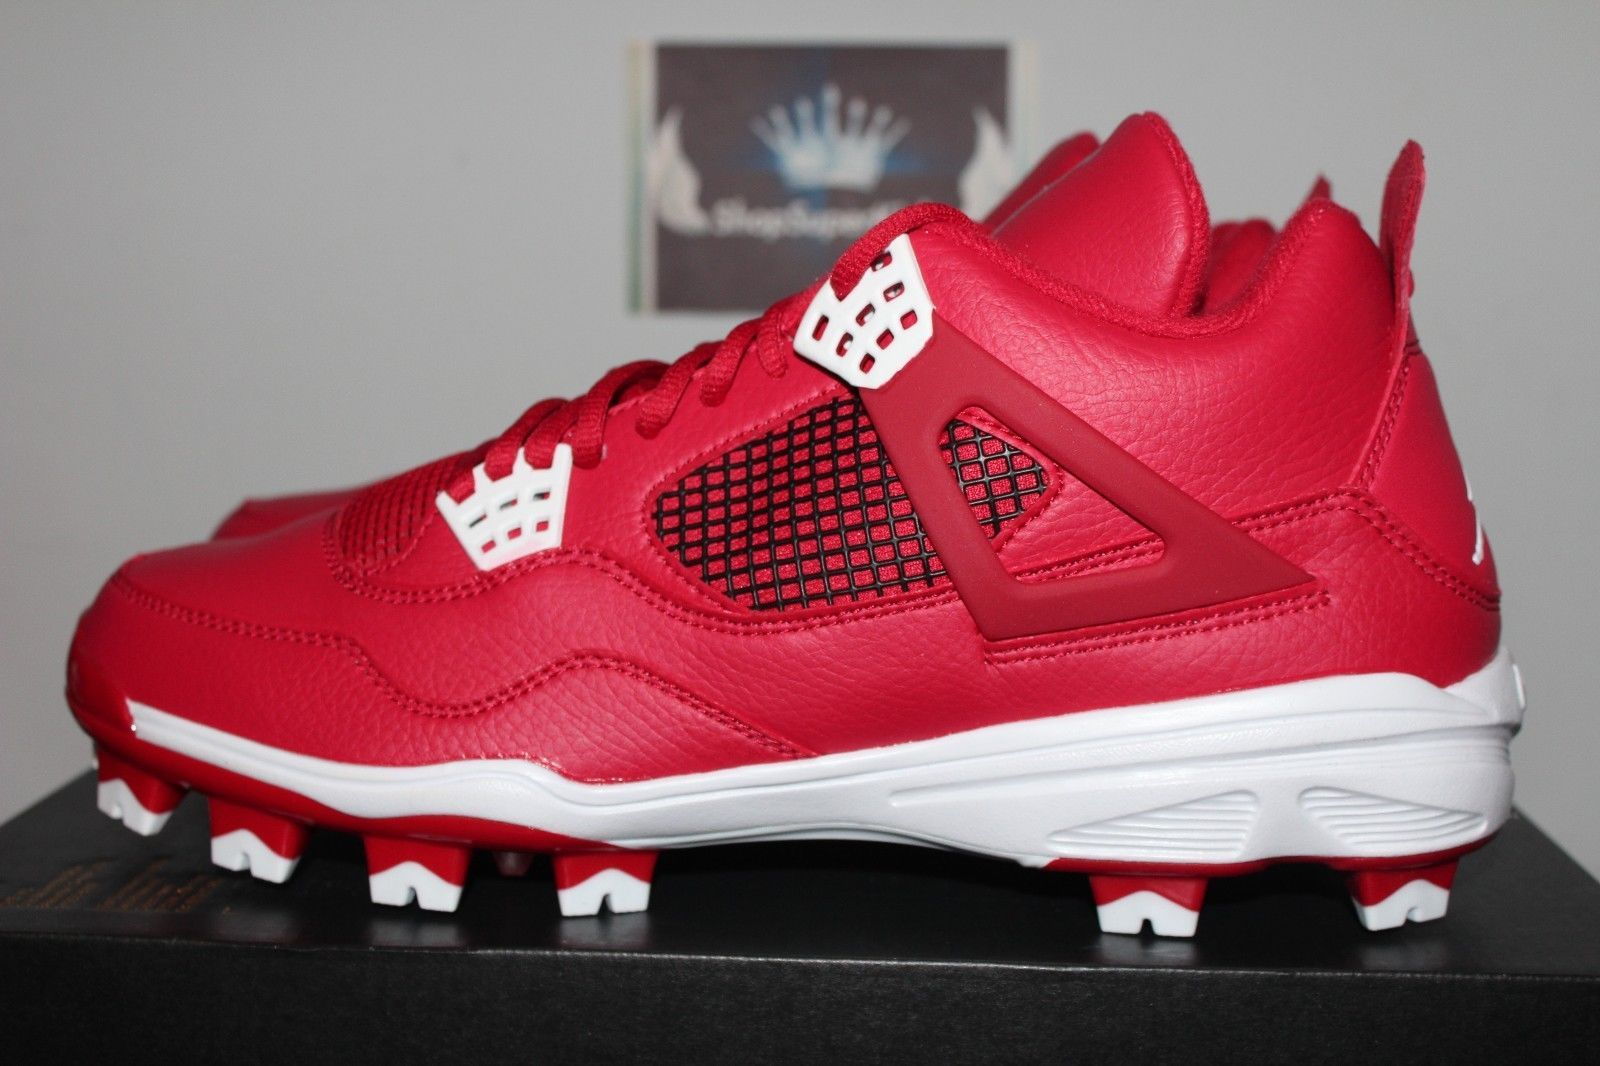 Nike Air Jordan IV 4 Retro MCS Gym Red/White Baseball Cleat 807709-601